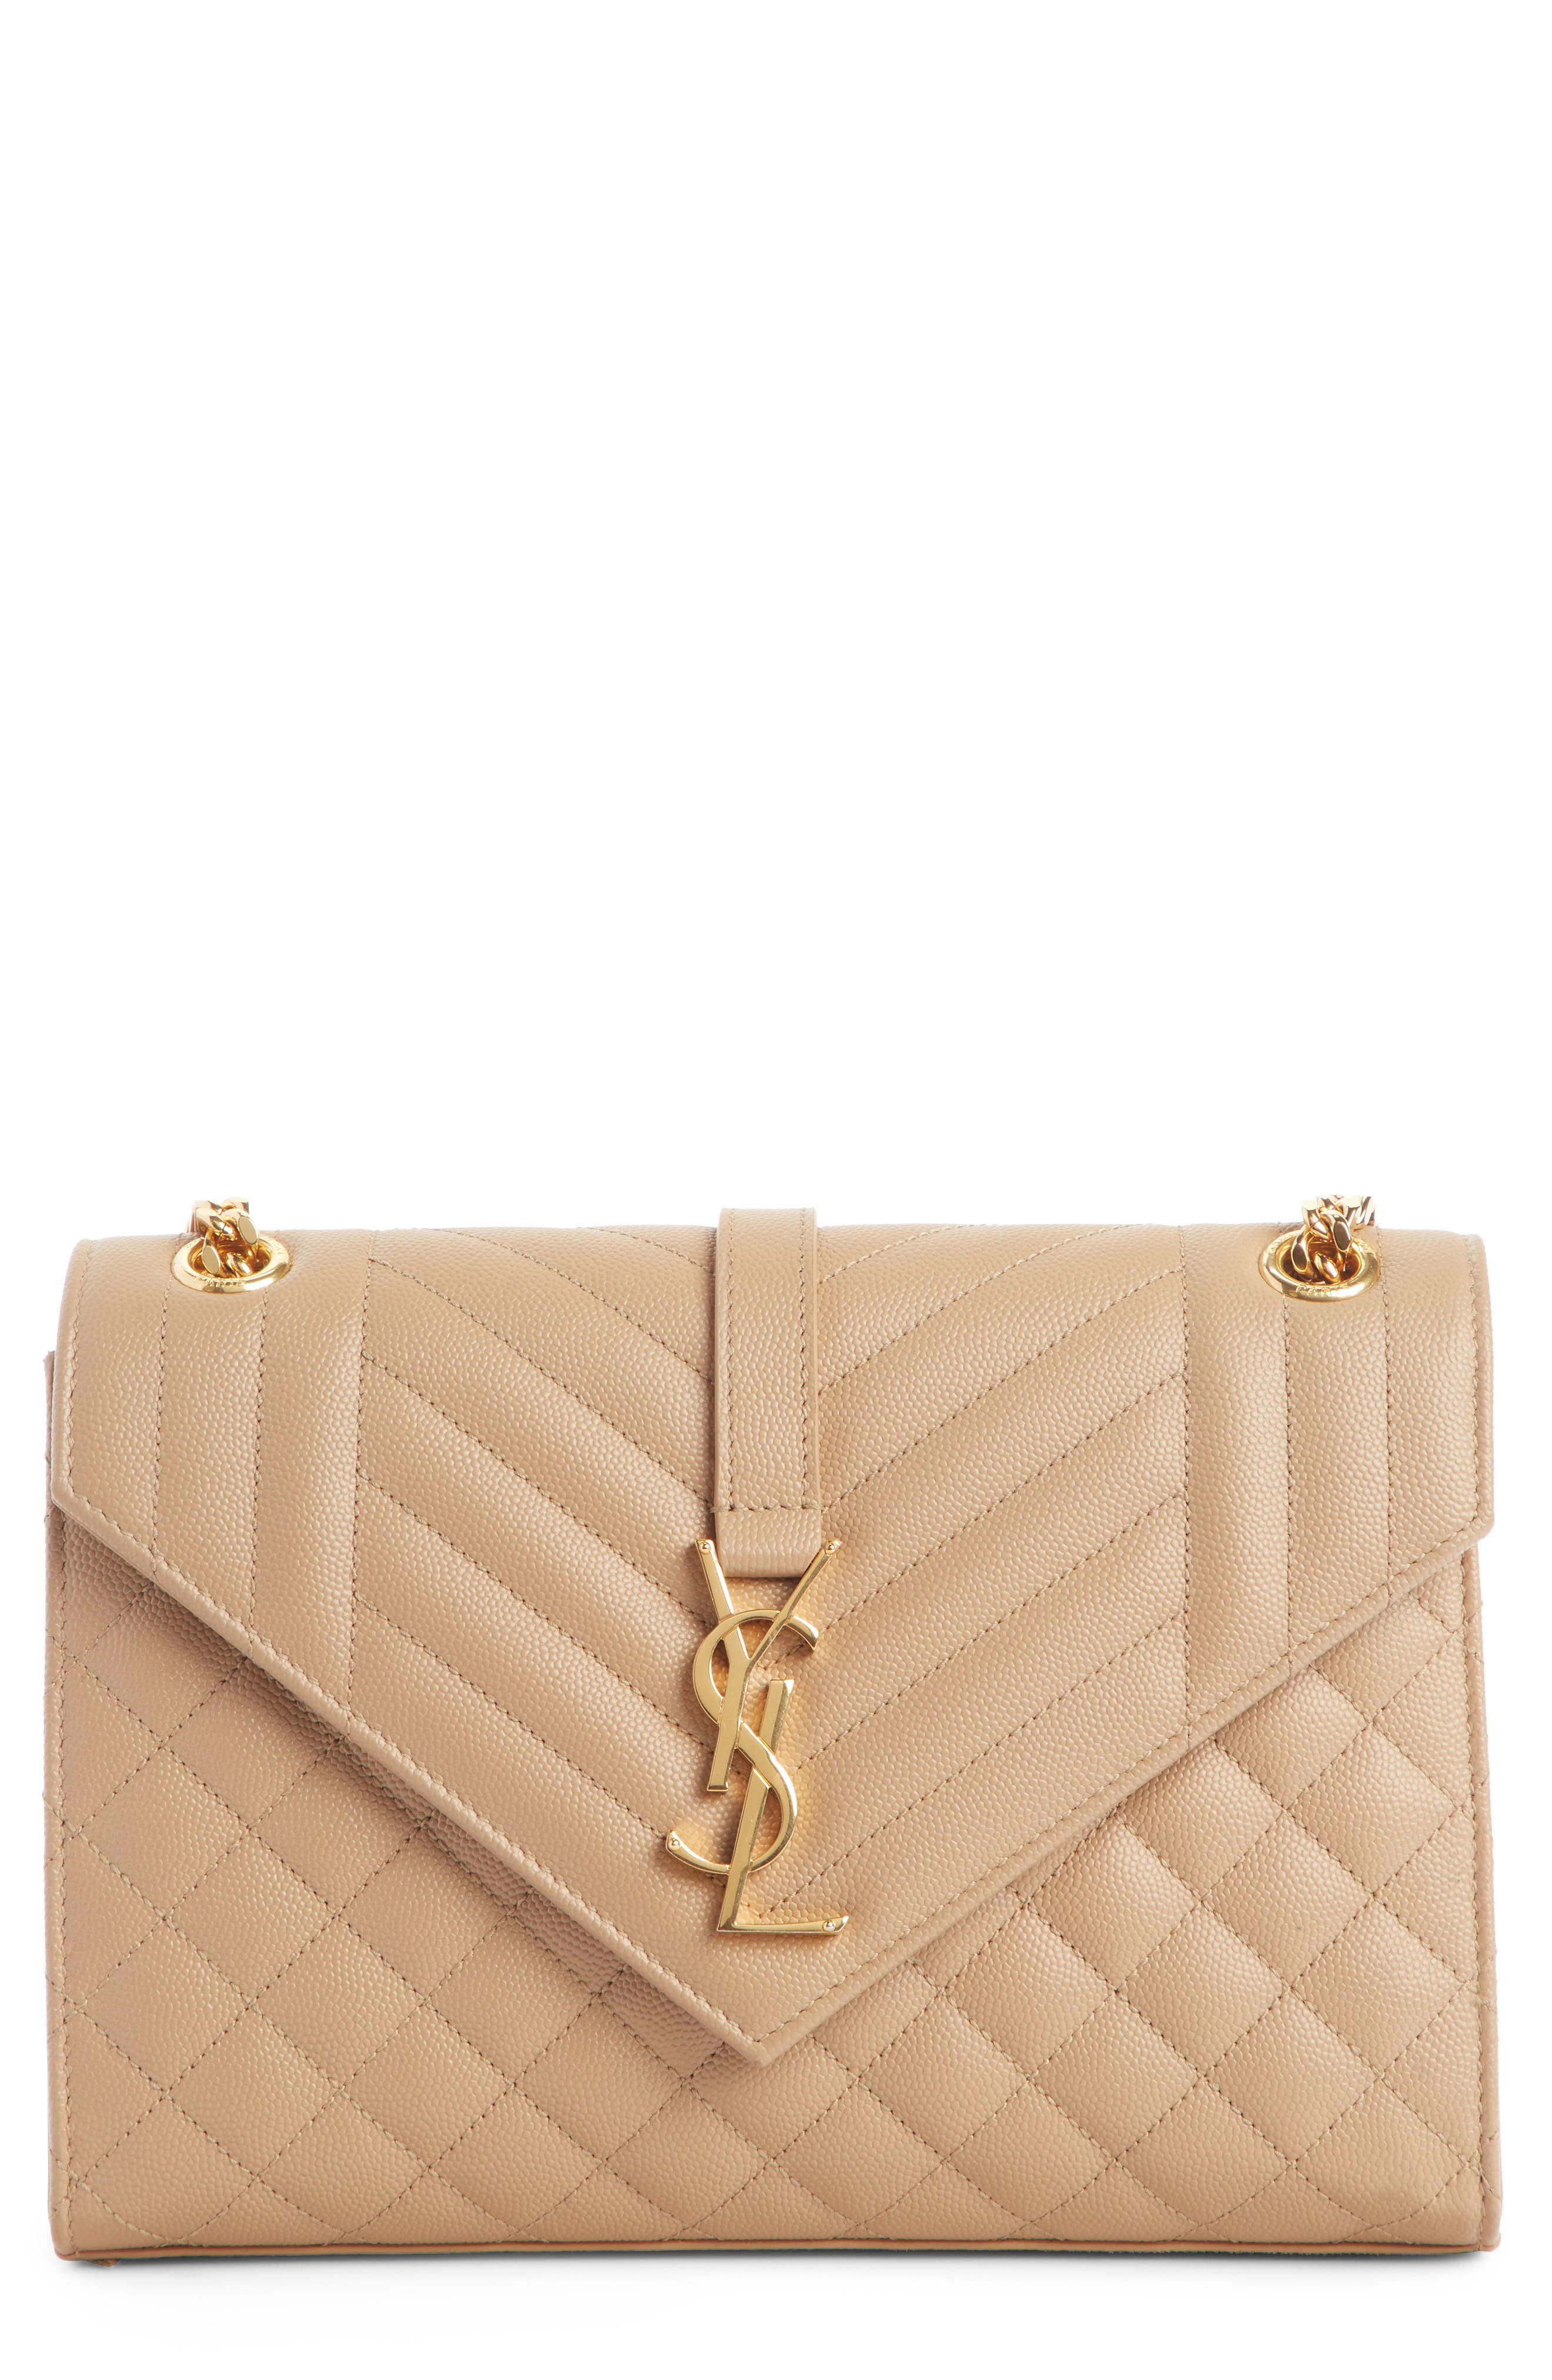 SAINT LAURENT Large Cassandra Calfskin Shoulder Bag, Main, color, CORK/ CORK